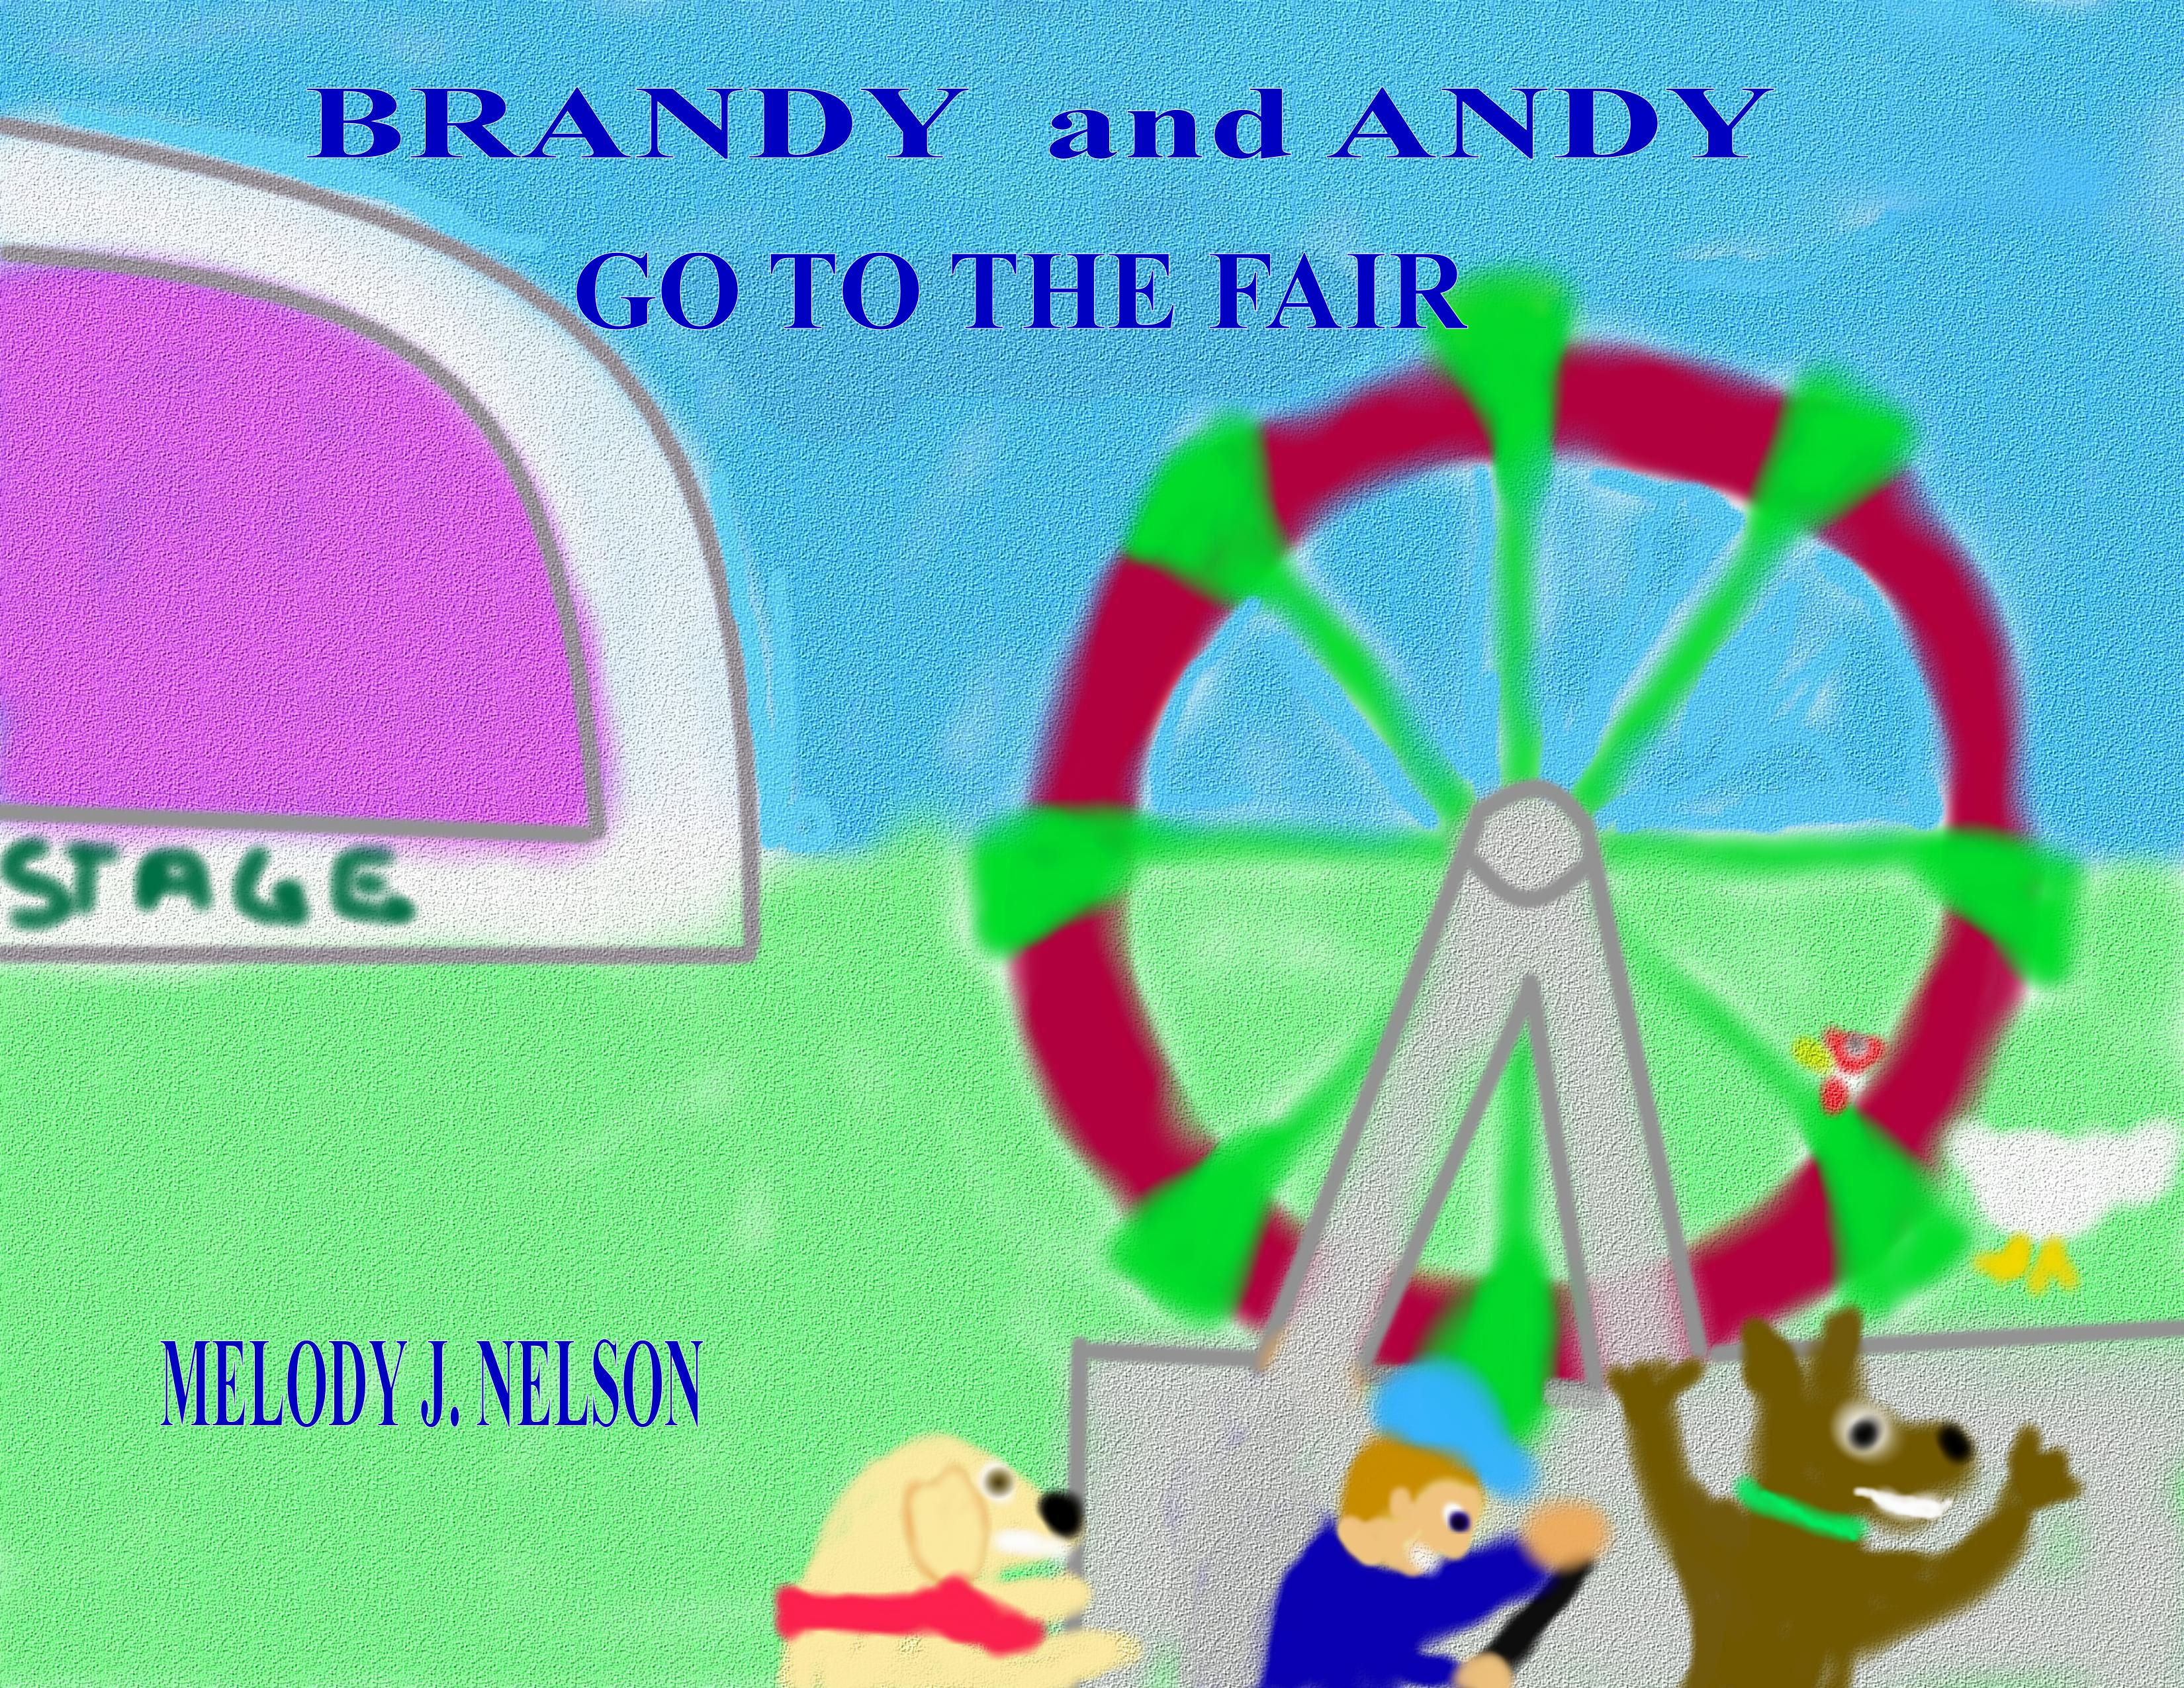 Brandy and Andy Go to the Fair.jpg